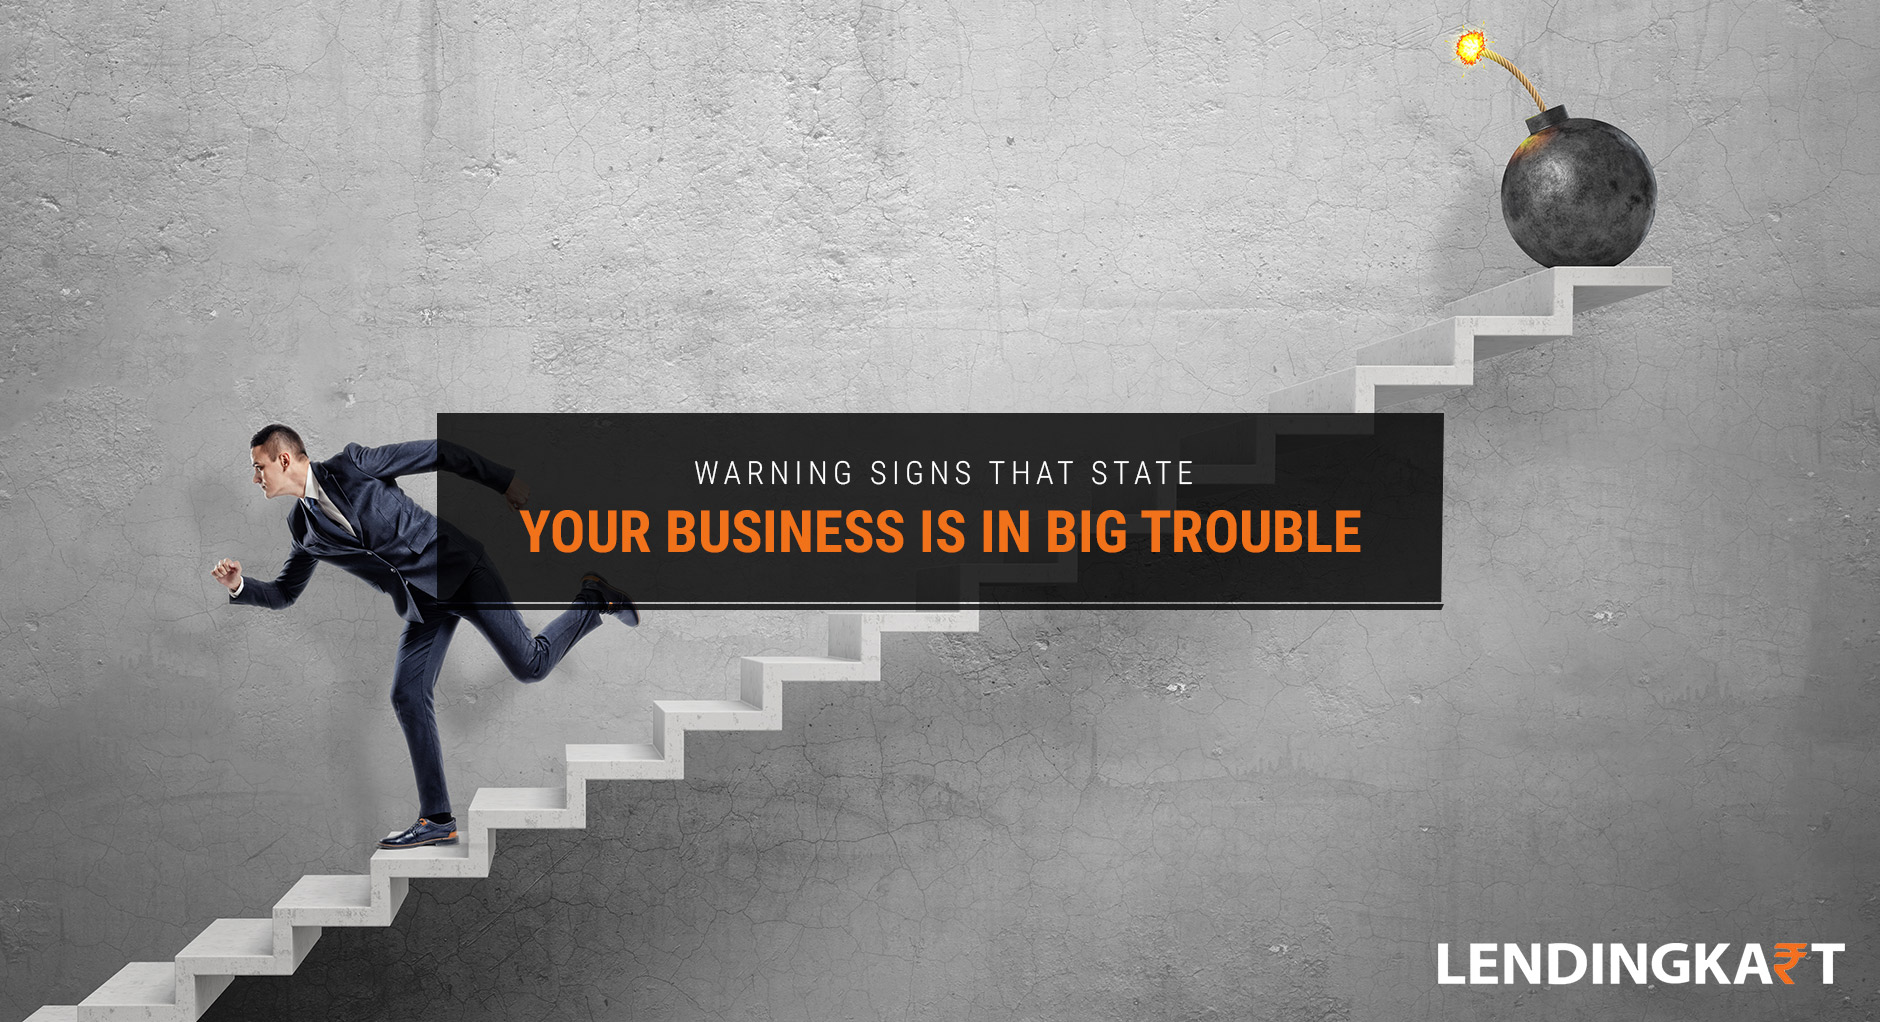 Warning Signs That State Your Business Is in Big Trouble